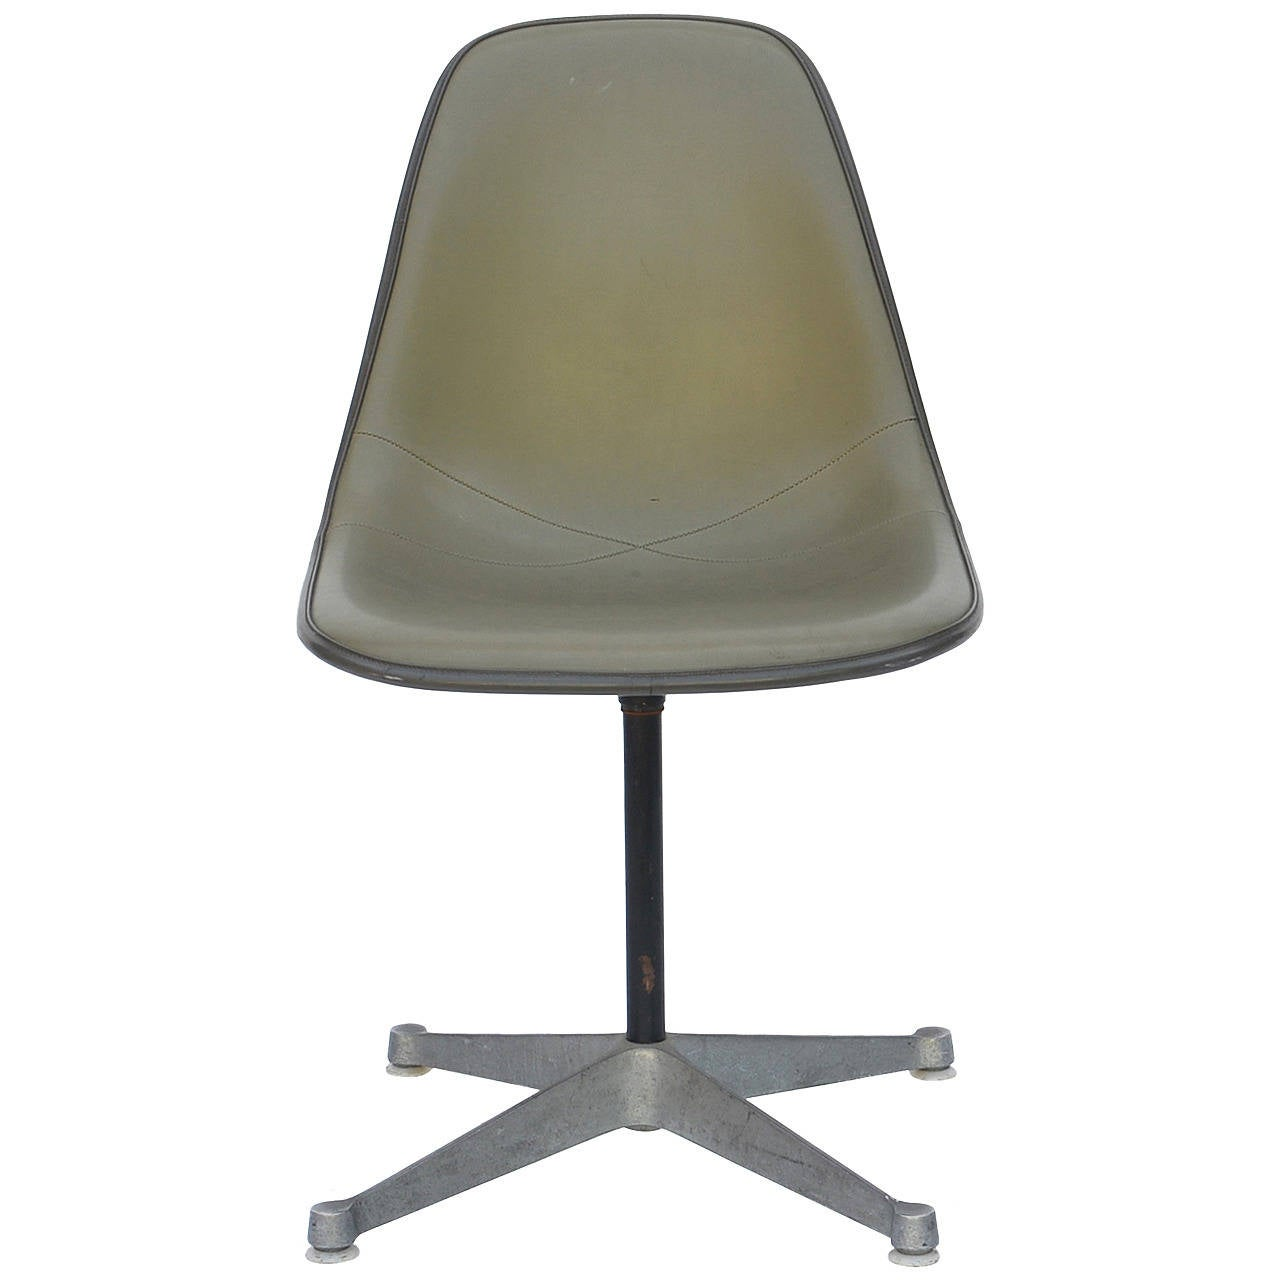 eames aluminum group swivel chair in elephant grey stitched naugahyde at 1stdibs. Black Bedroom Furniture Sets. Home Design Ideas